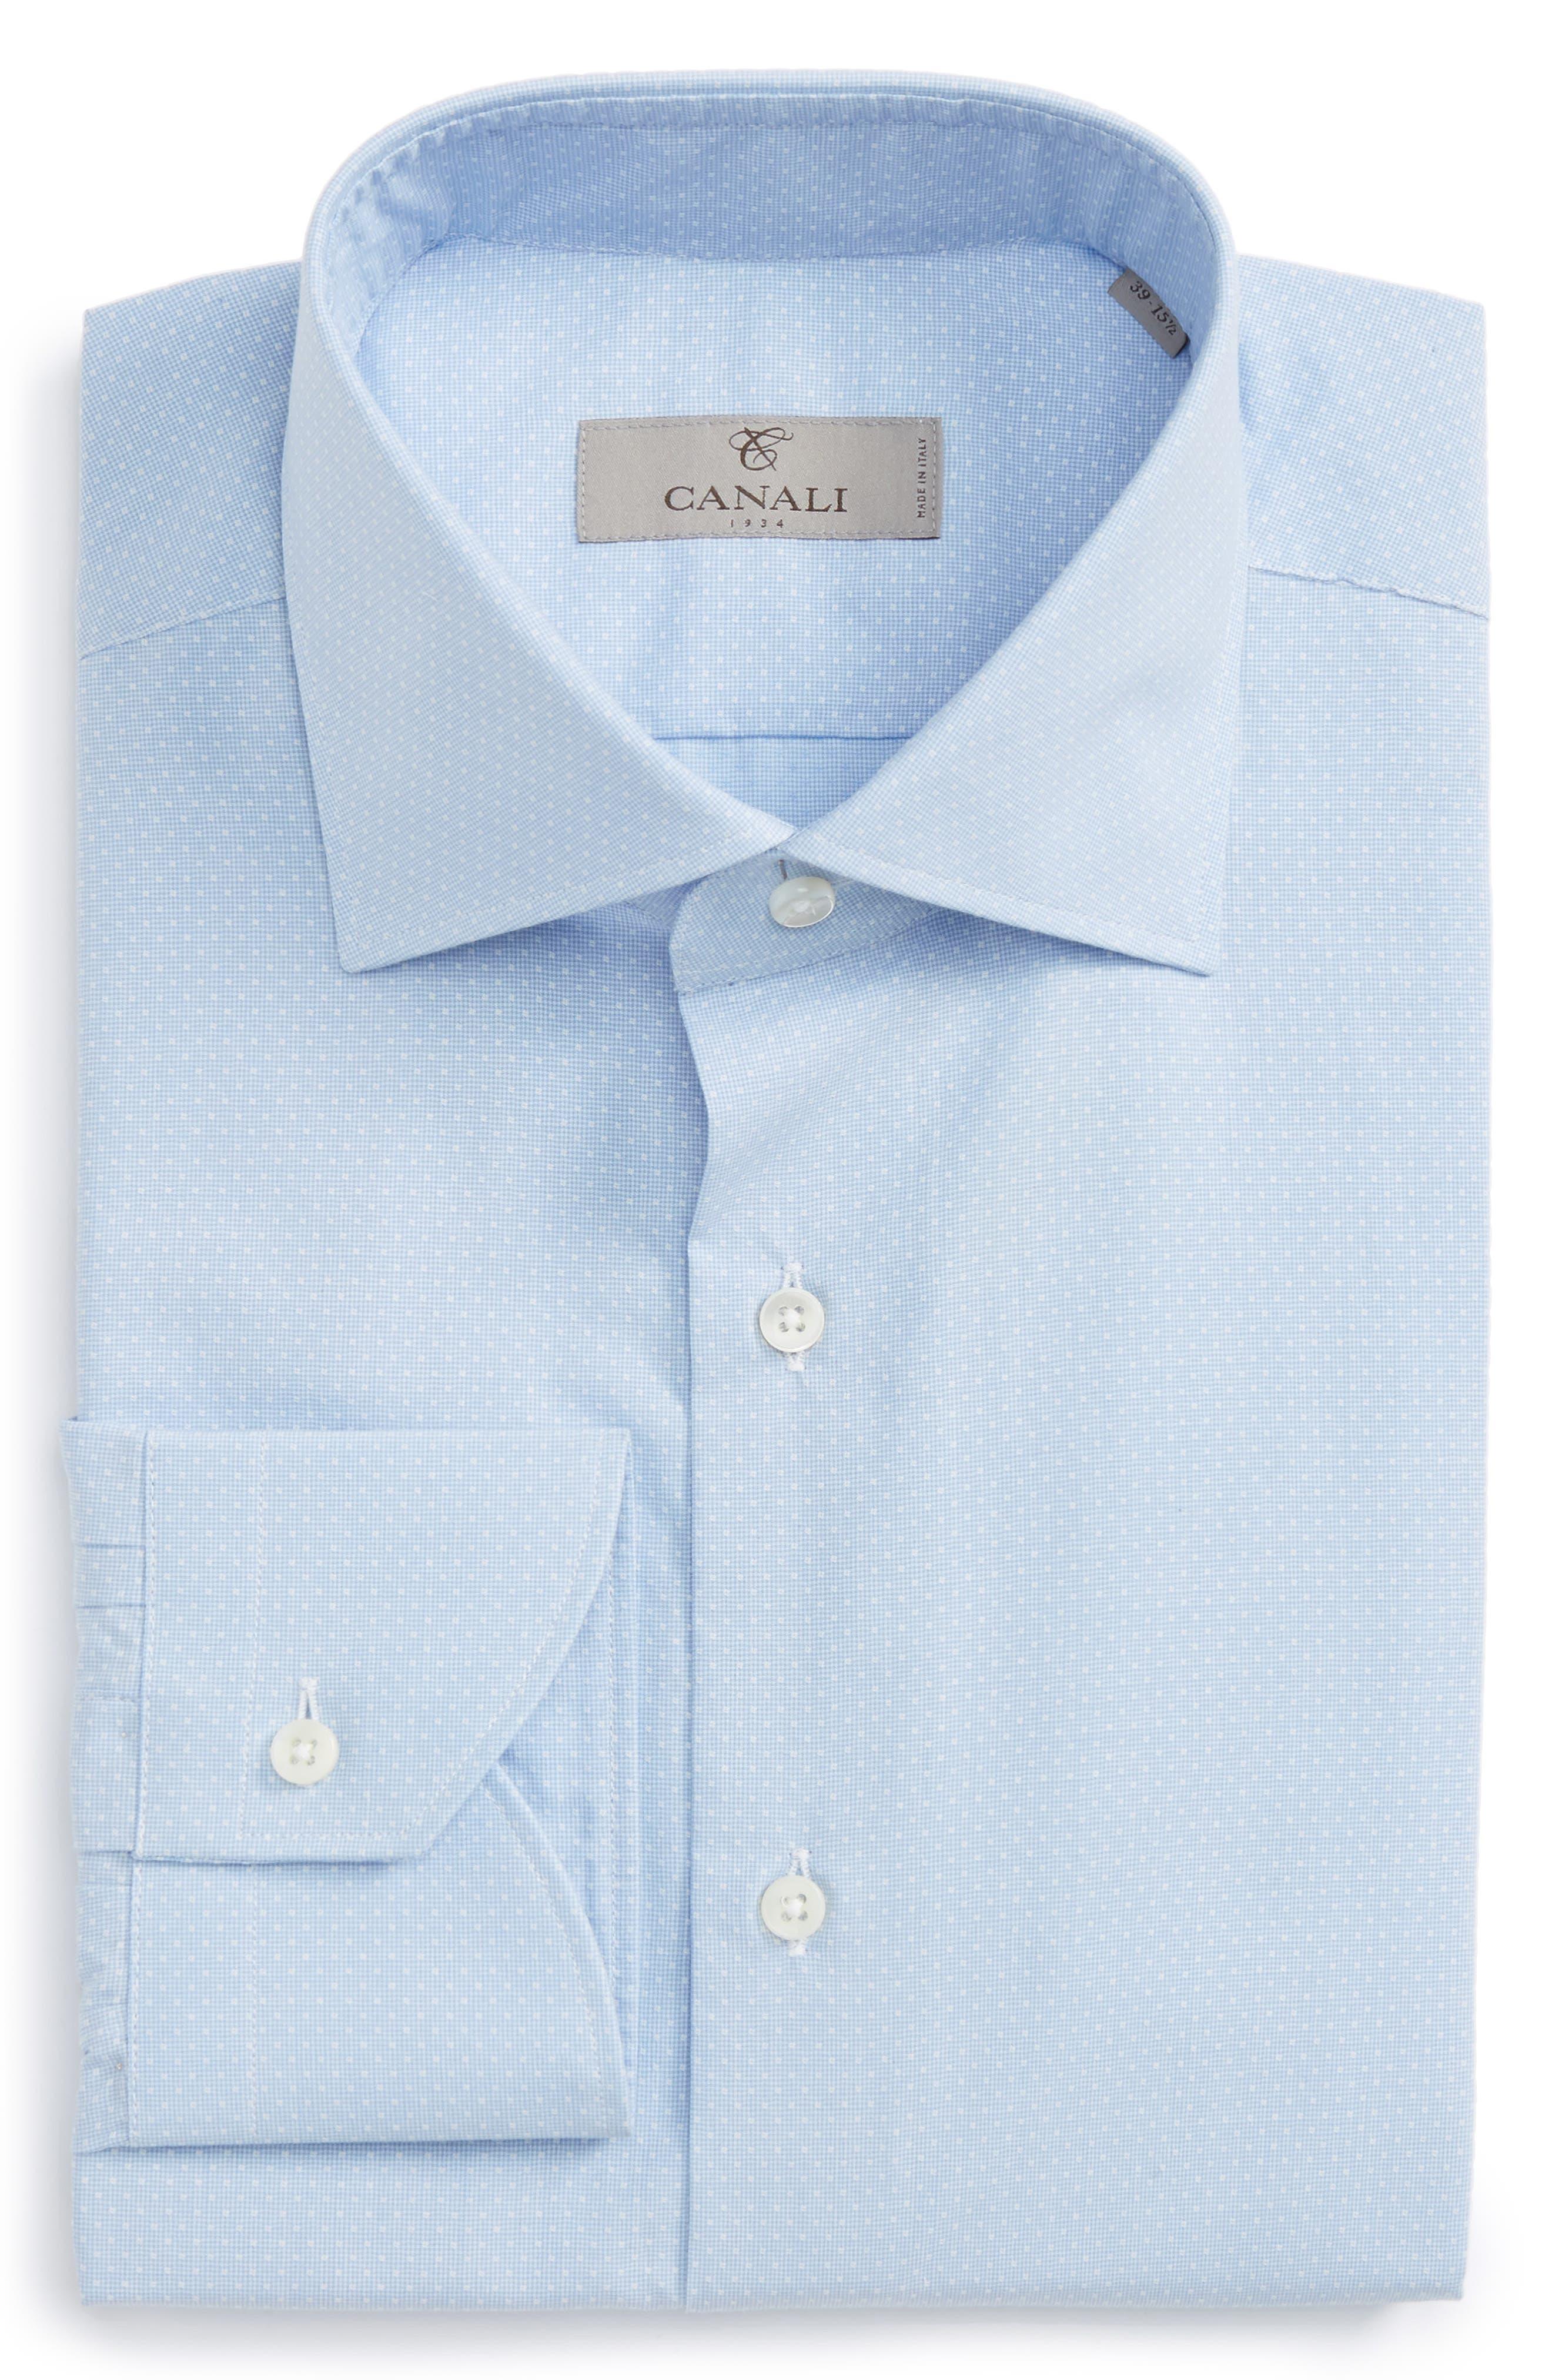 Regular Fit Check Dress Shirt,                             Main thumbnail 1, color,                             Light Blue